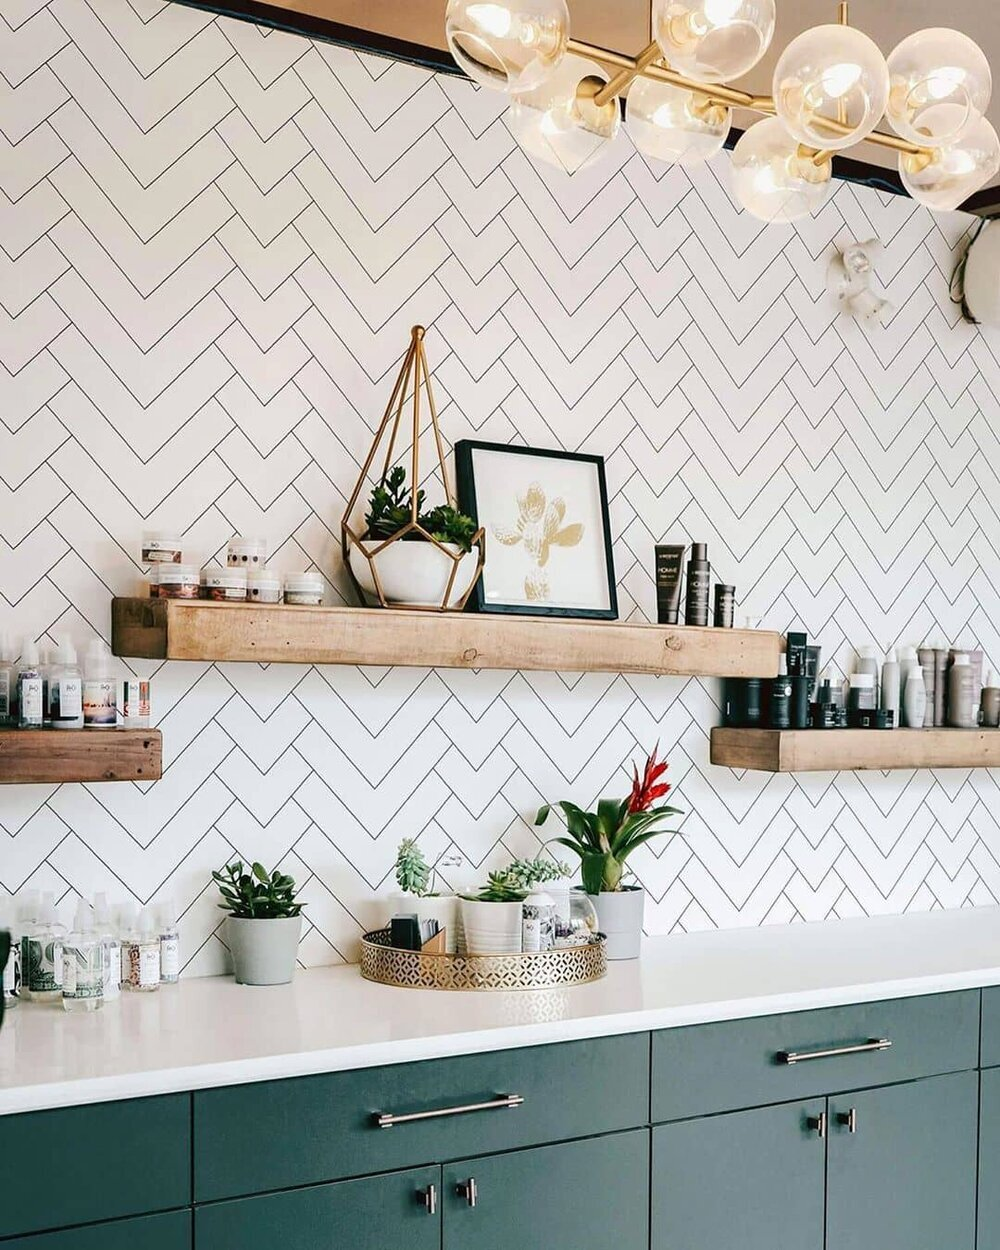 Kitchen wallpaper ideas and where to AVOID wallpapering   Fifi McGee